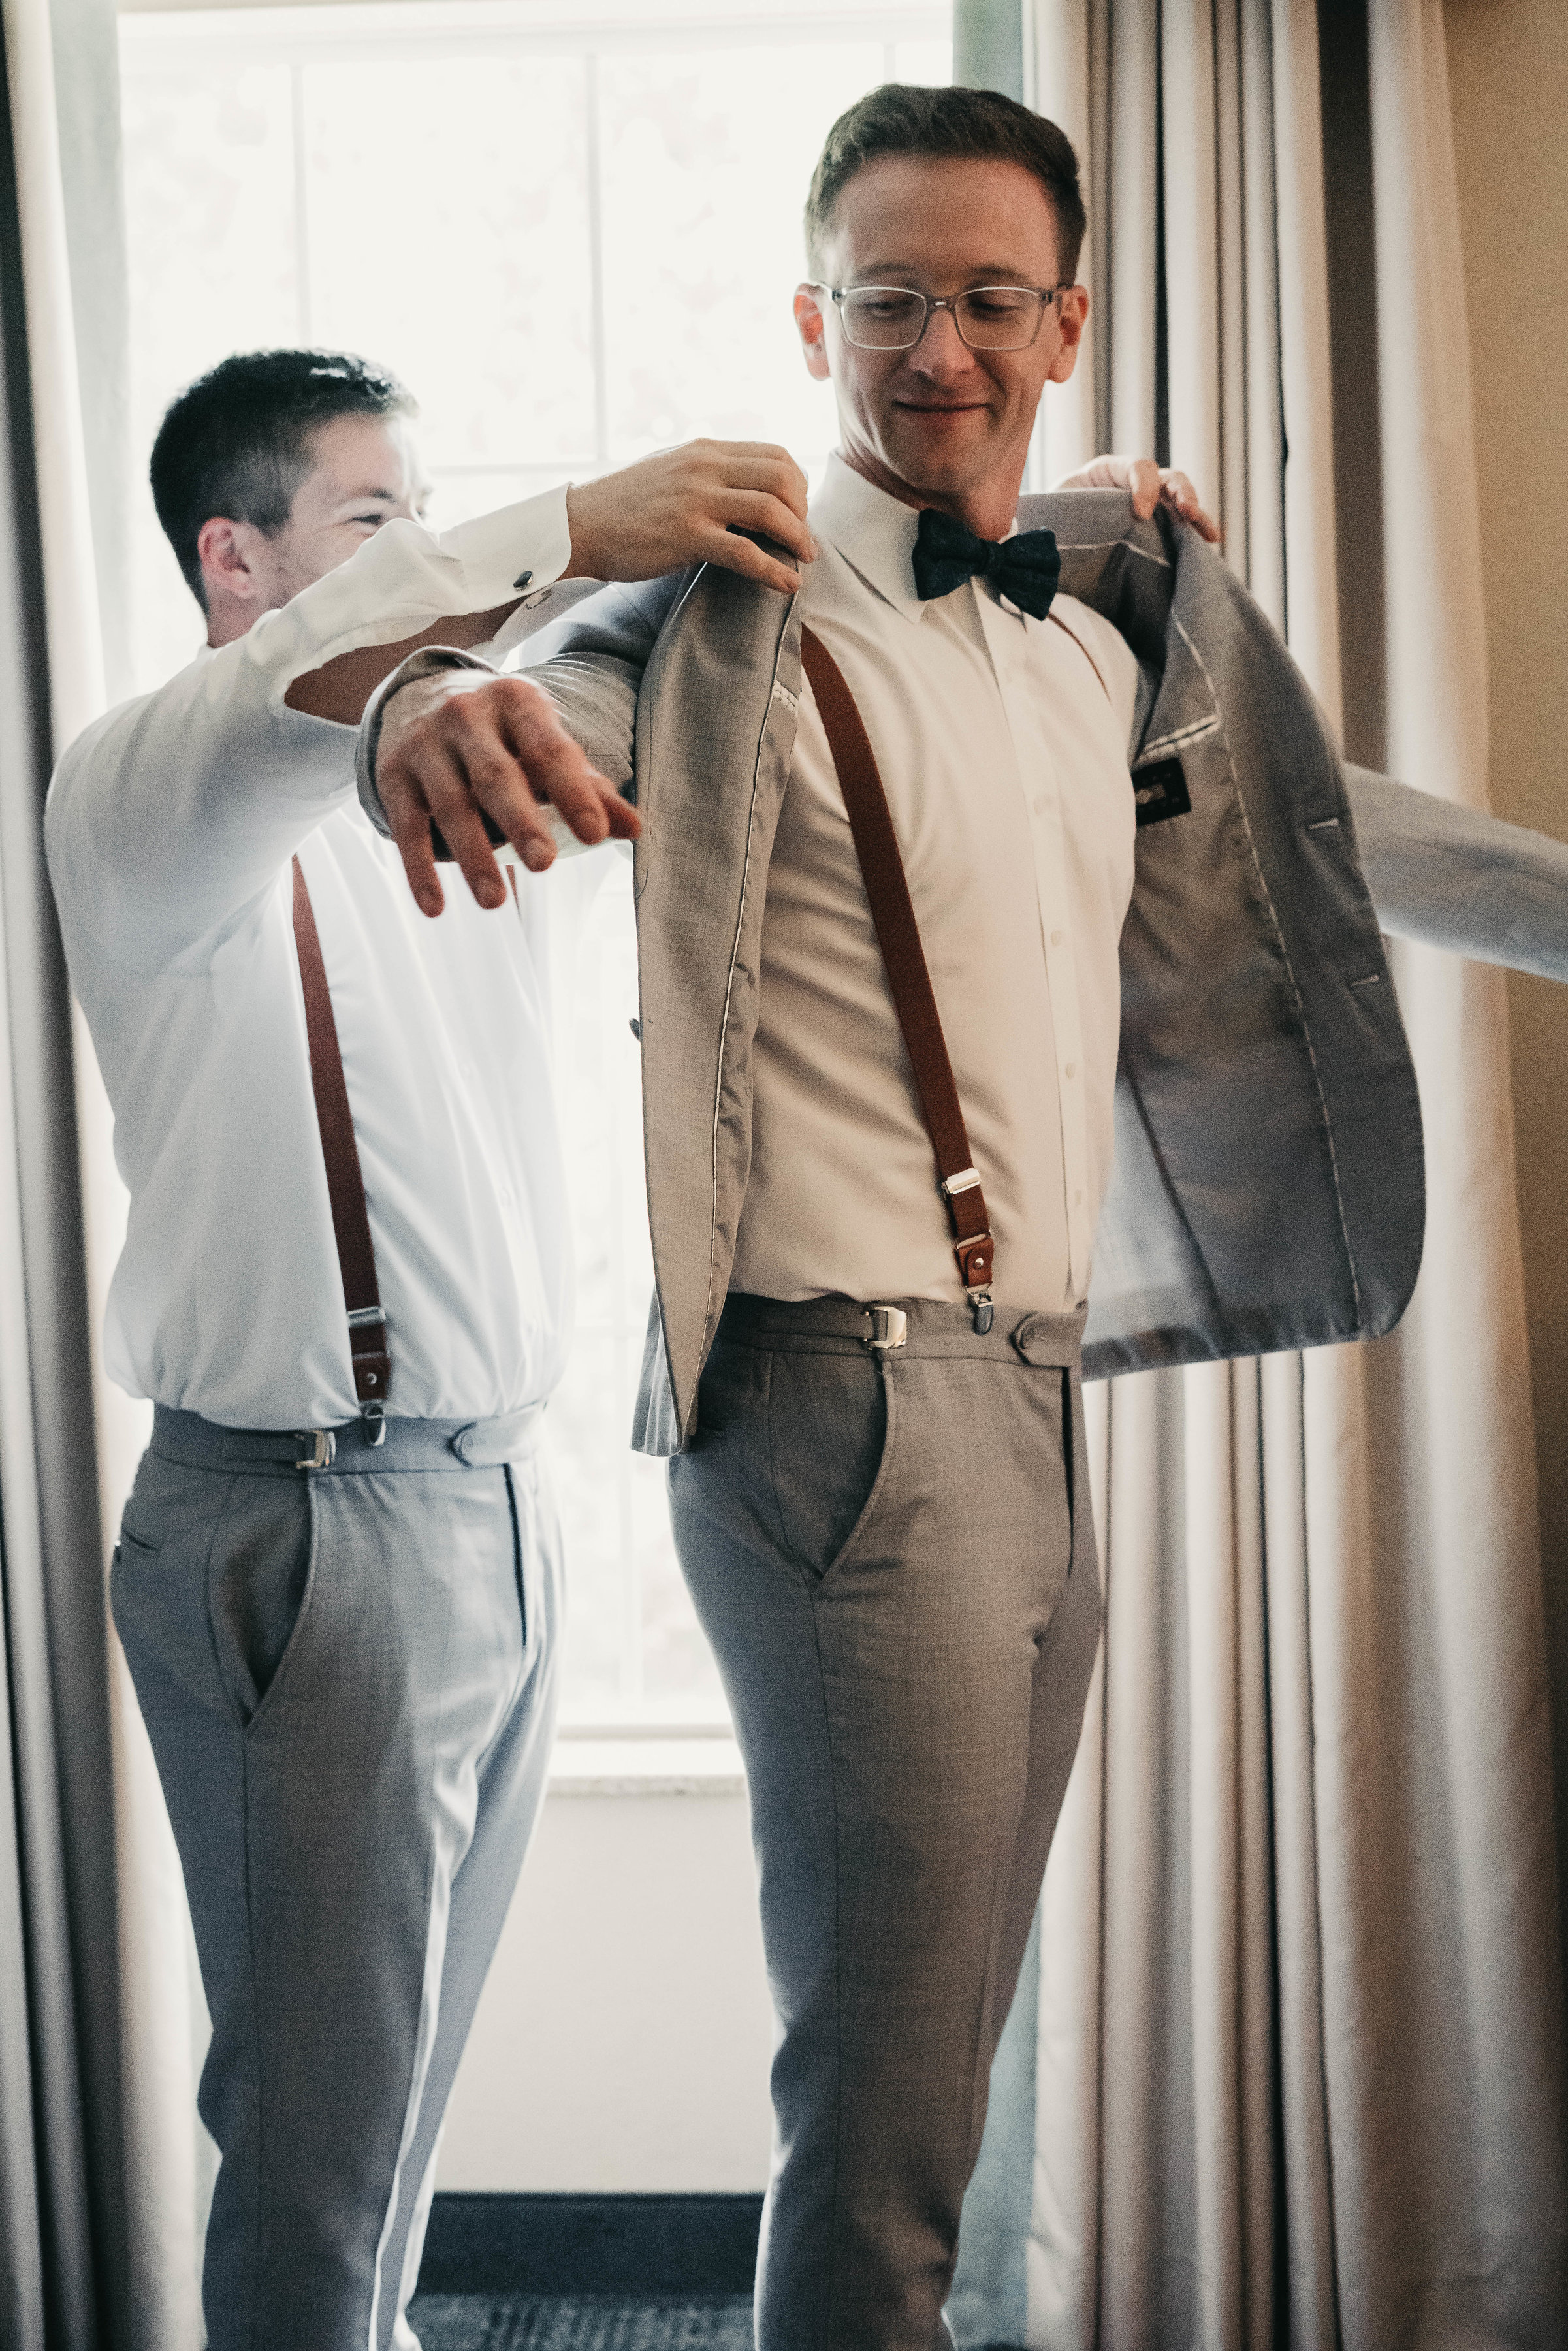 Groom Putting On Grey Jacket